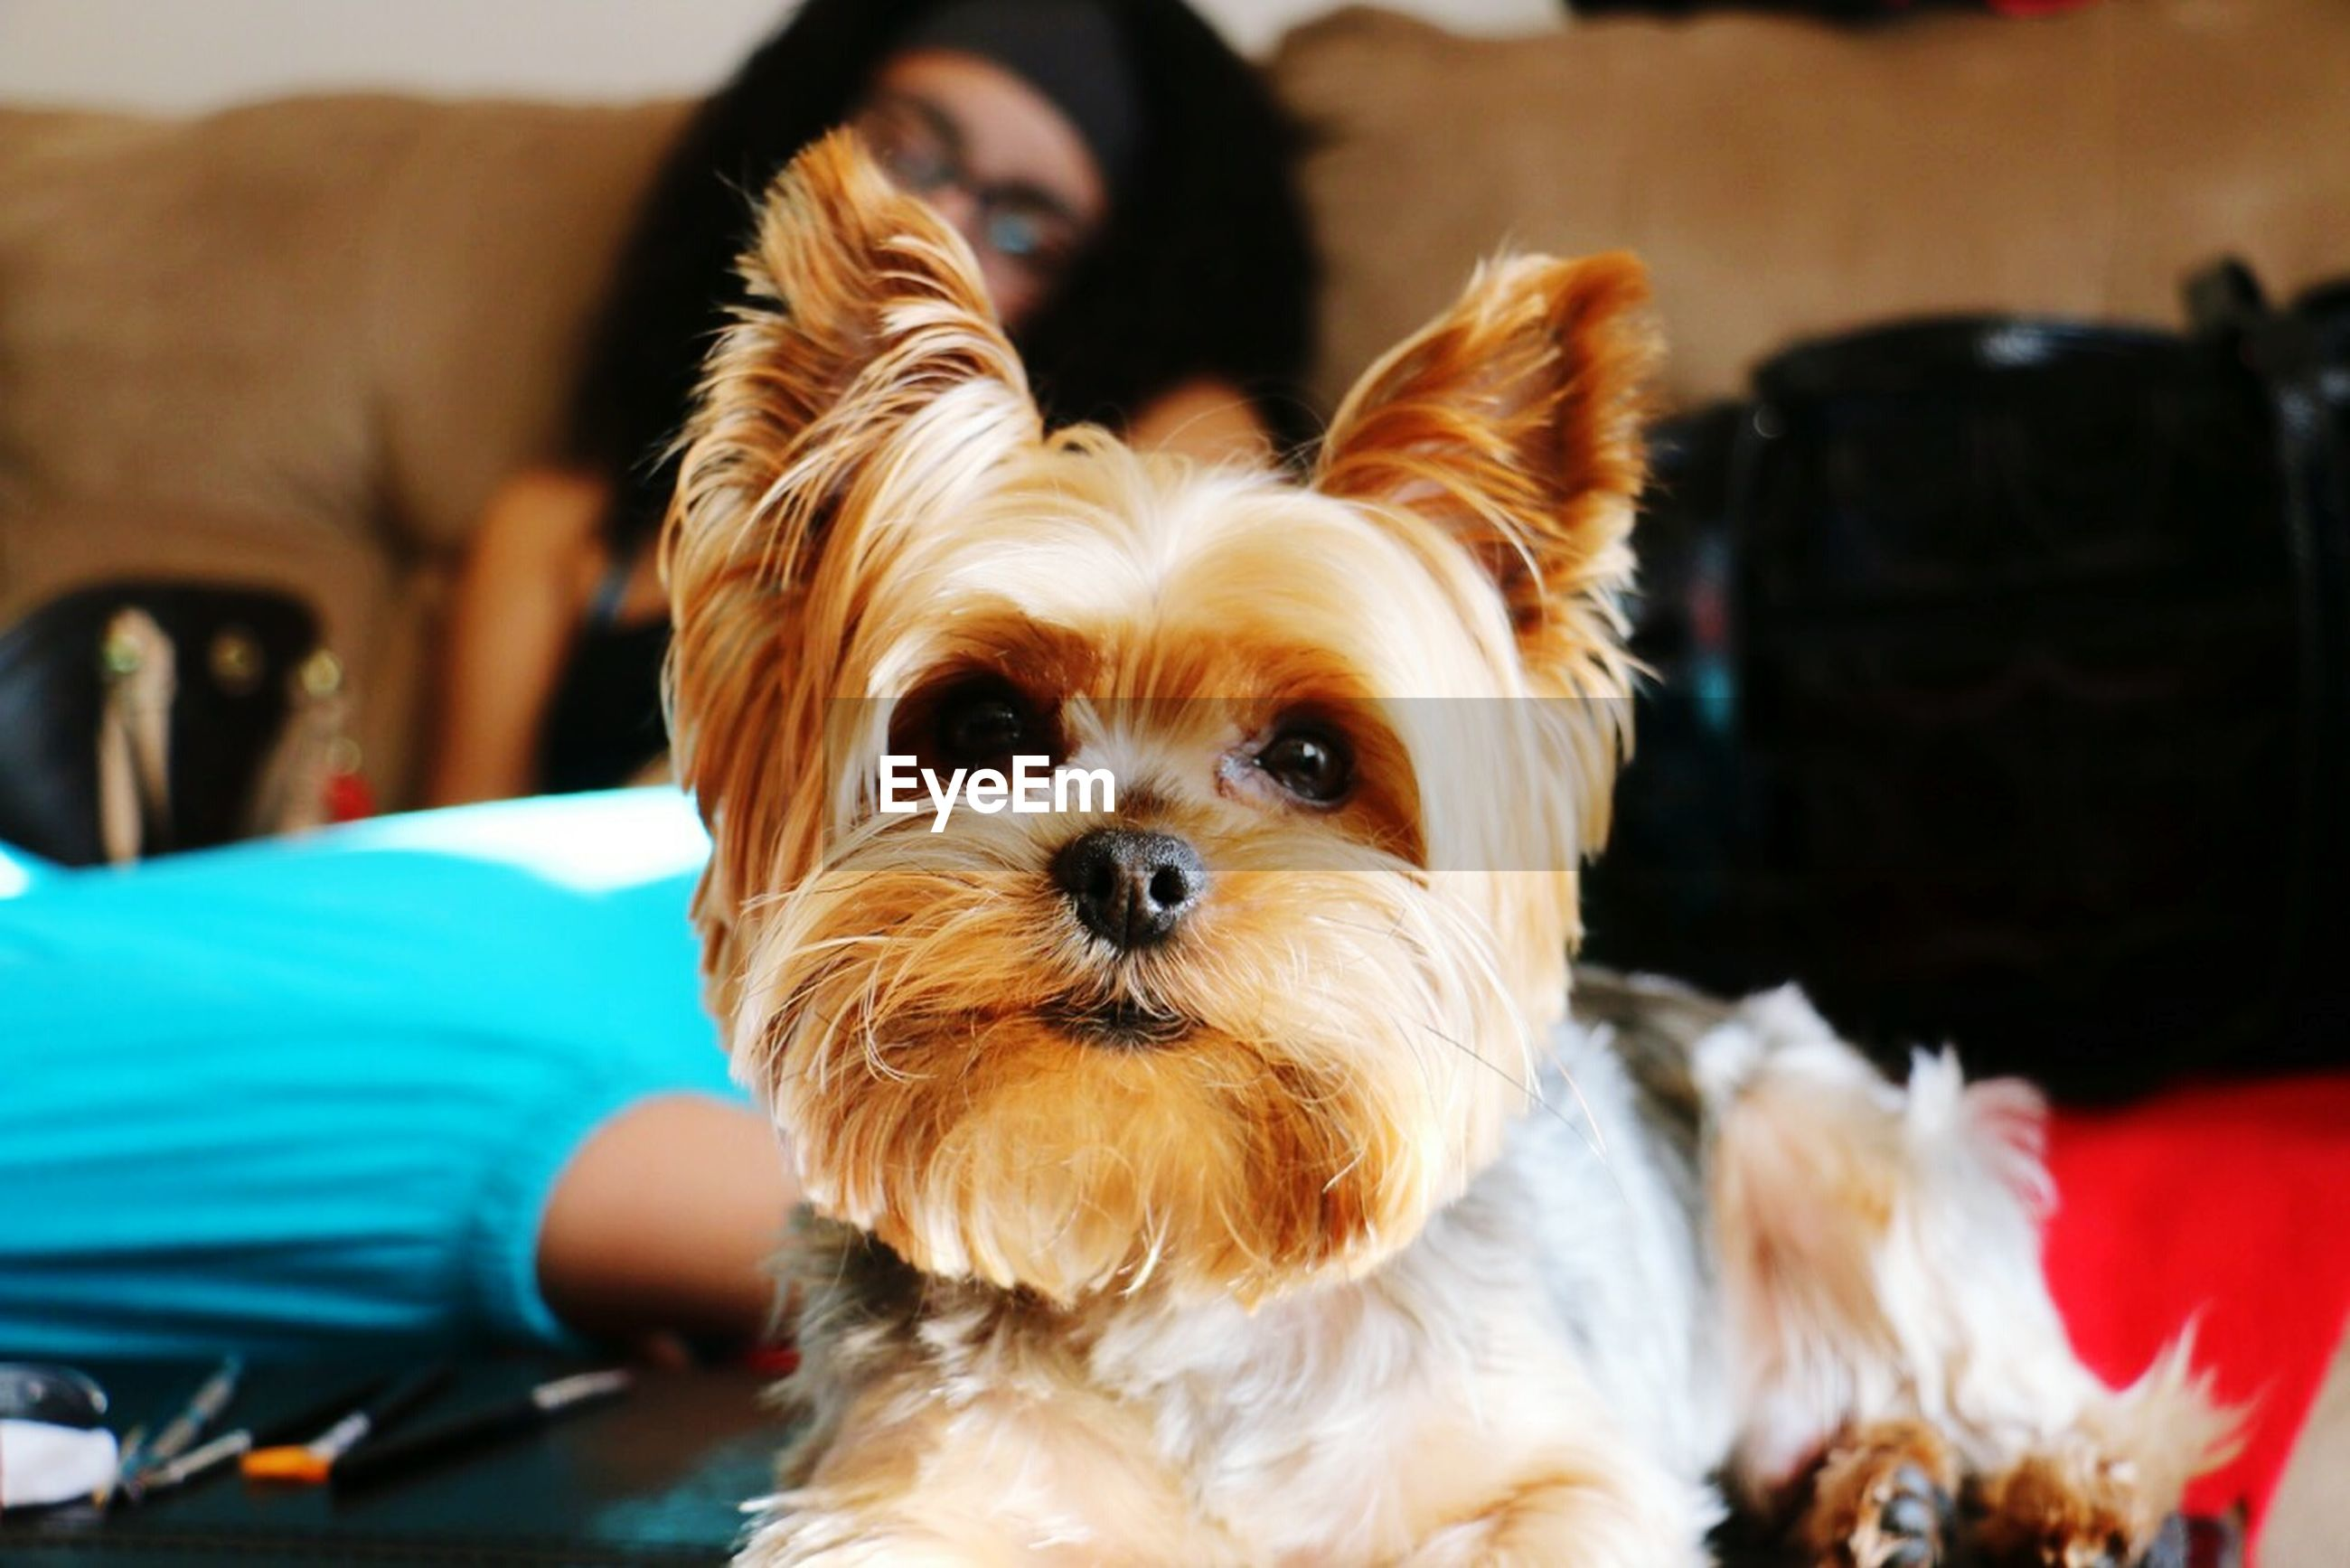 pets, dog, domestic animals, portrait, looking at camera, animal themes, one animal, mammal, indoors, focus on foreground, close-up, cute, animal hair, animal head, front view, no people, selective focus, relaxation, pampered pets, sitting